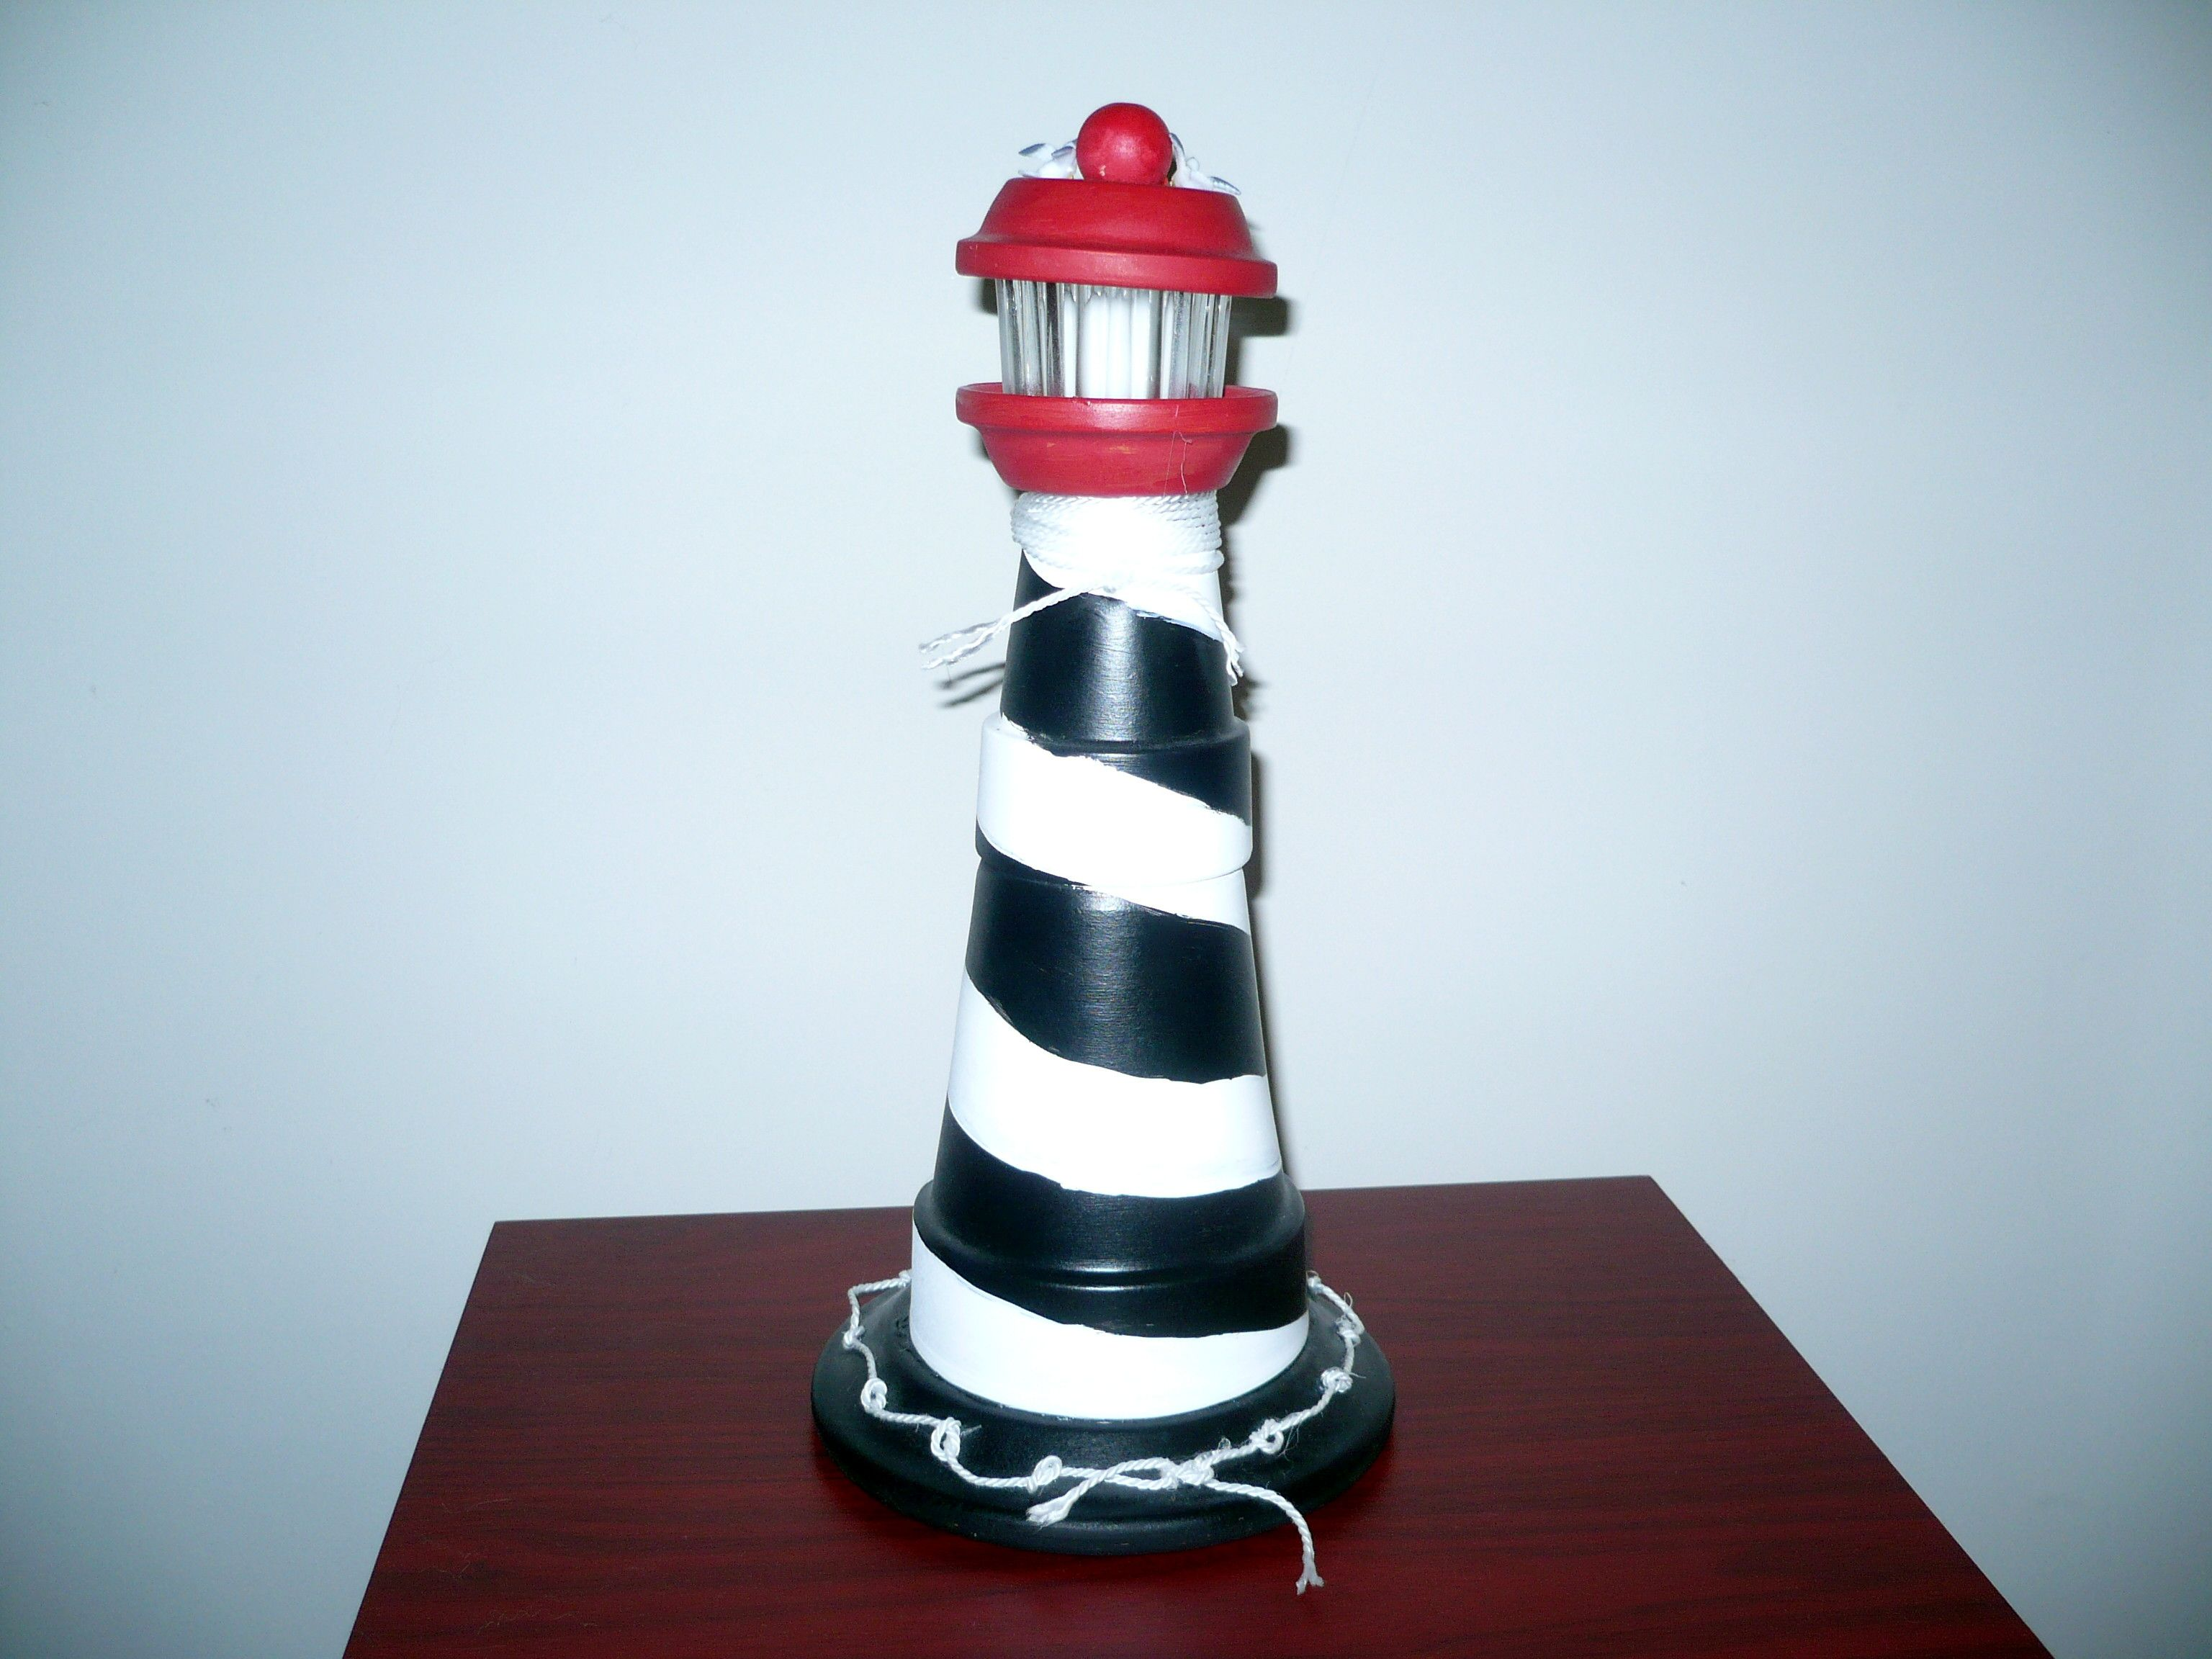 Diy make a clay pot lighthouse diy craft projects - Lighthouses Made From Terra Cotta Pots Can Do Very Large Yard Versions With Working Lights Clay Pot Craftsdiy